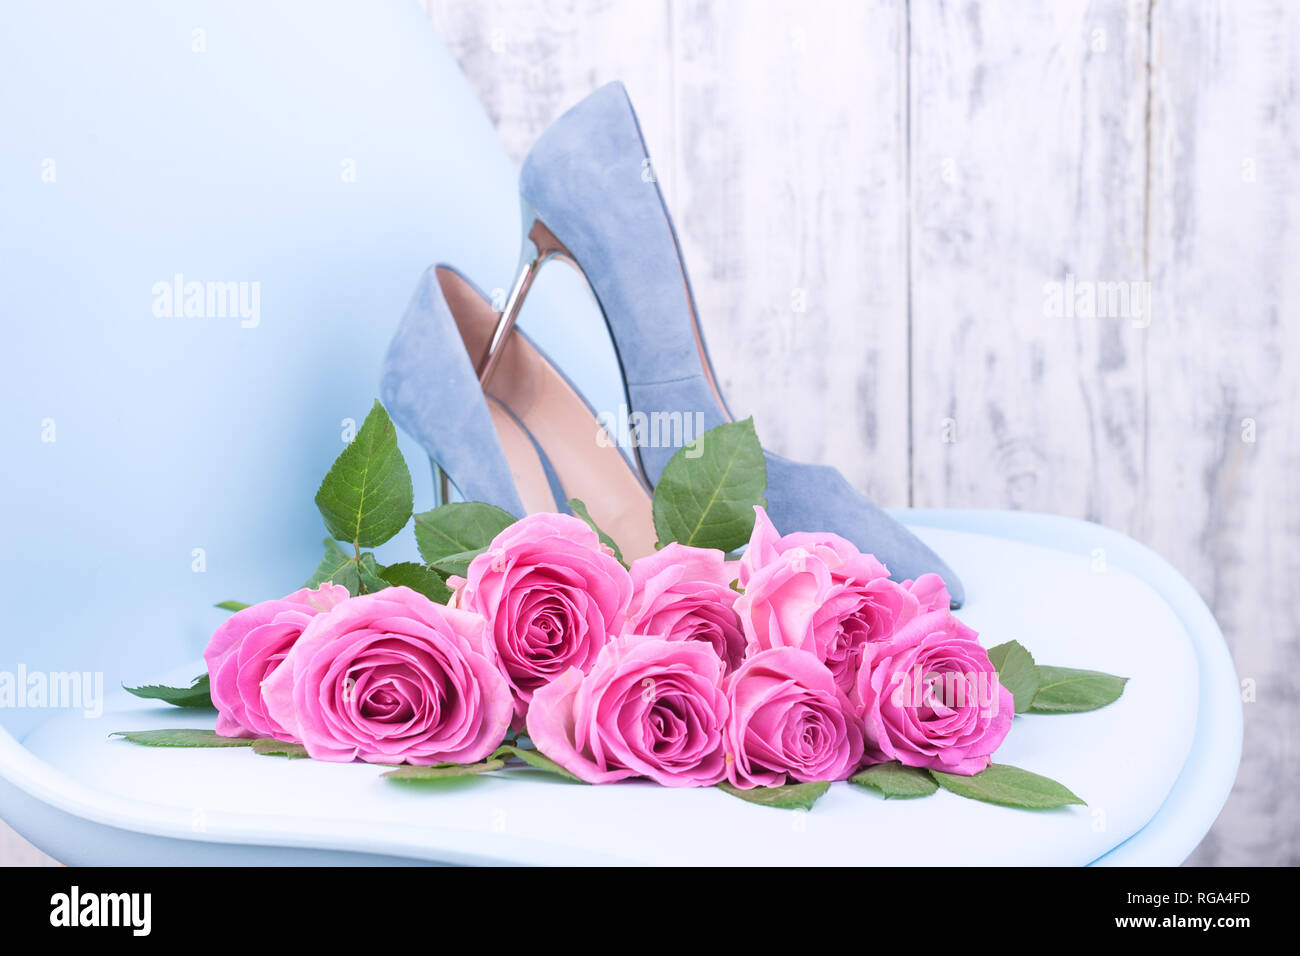 A Large Bouquet Of Pink Roses On A Blue Chair In Womens Shoes With